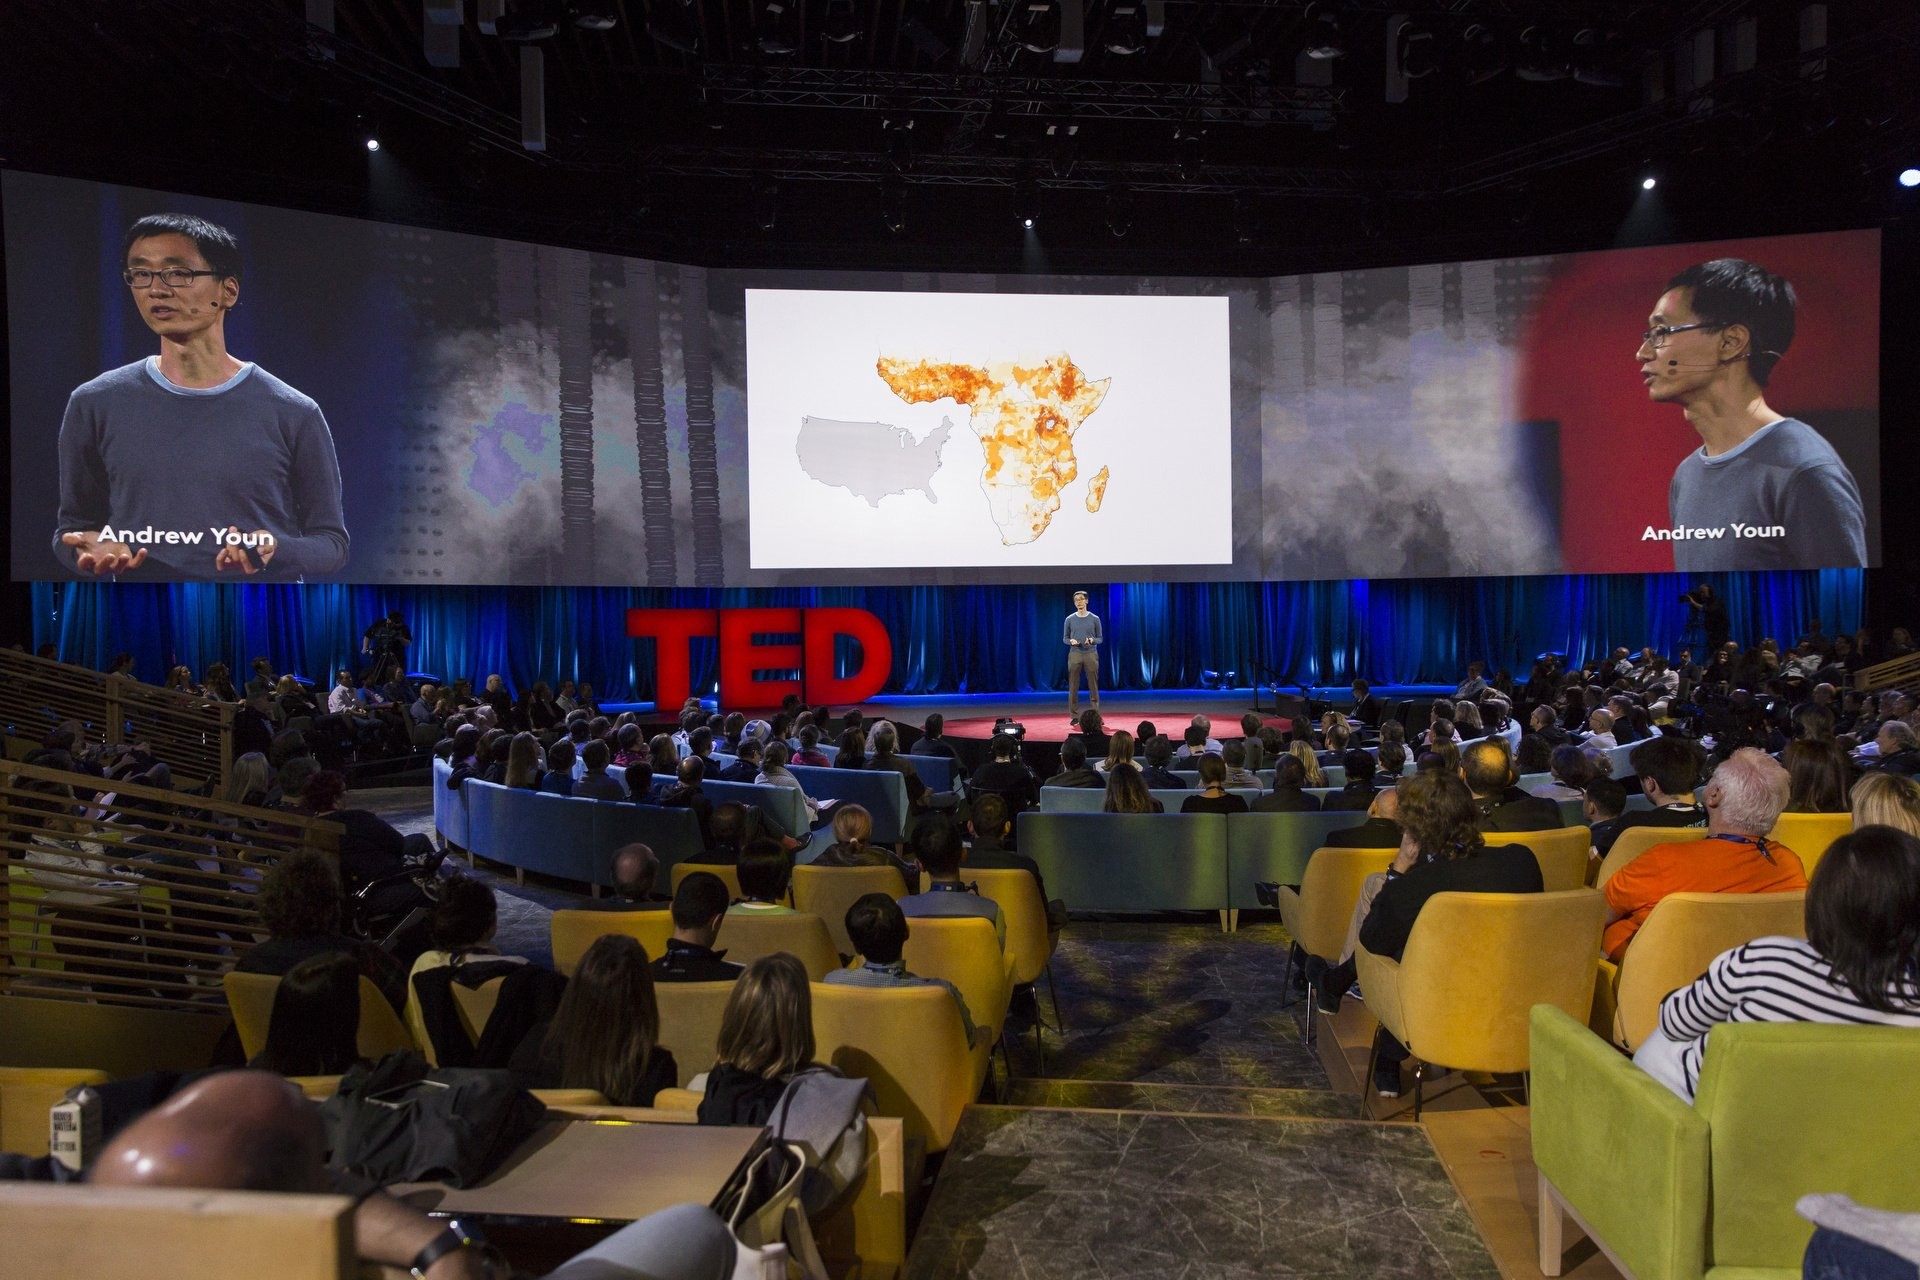 Wide angle shot of Andrew Youn at TED